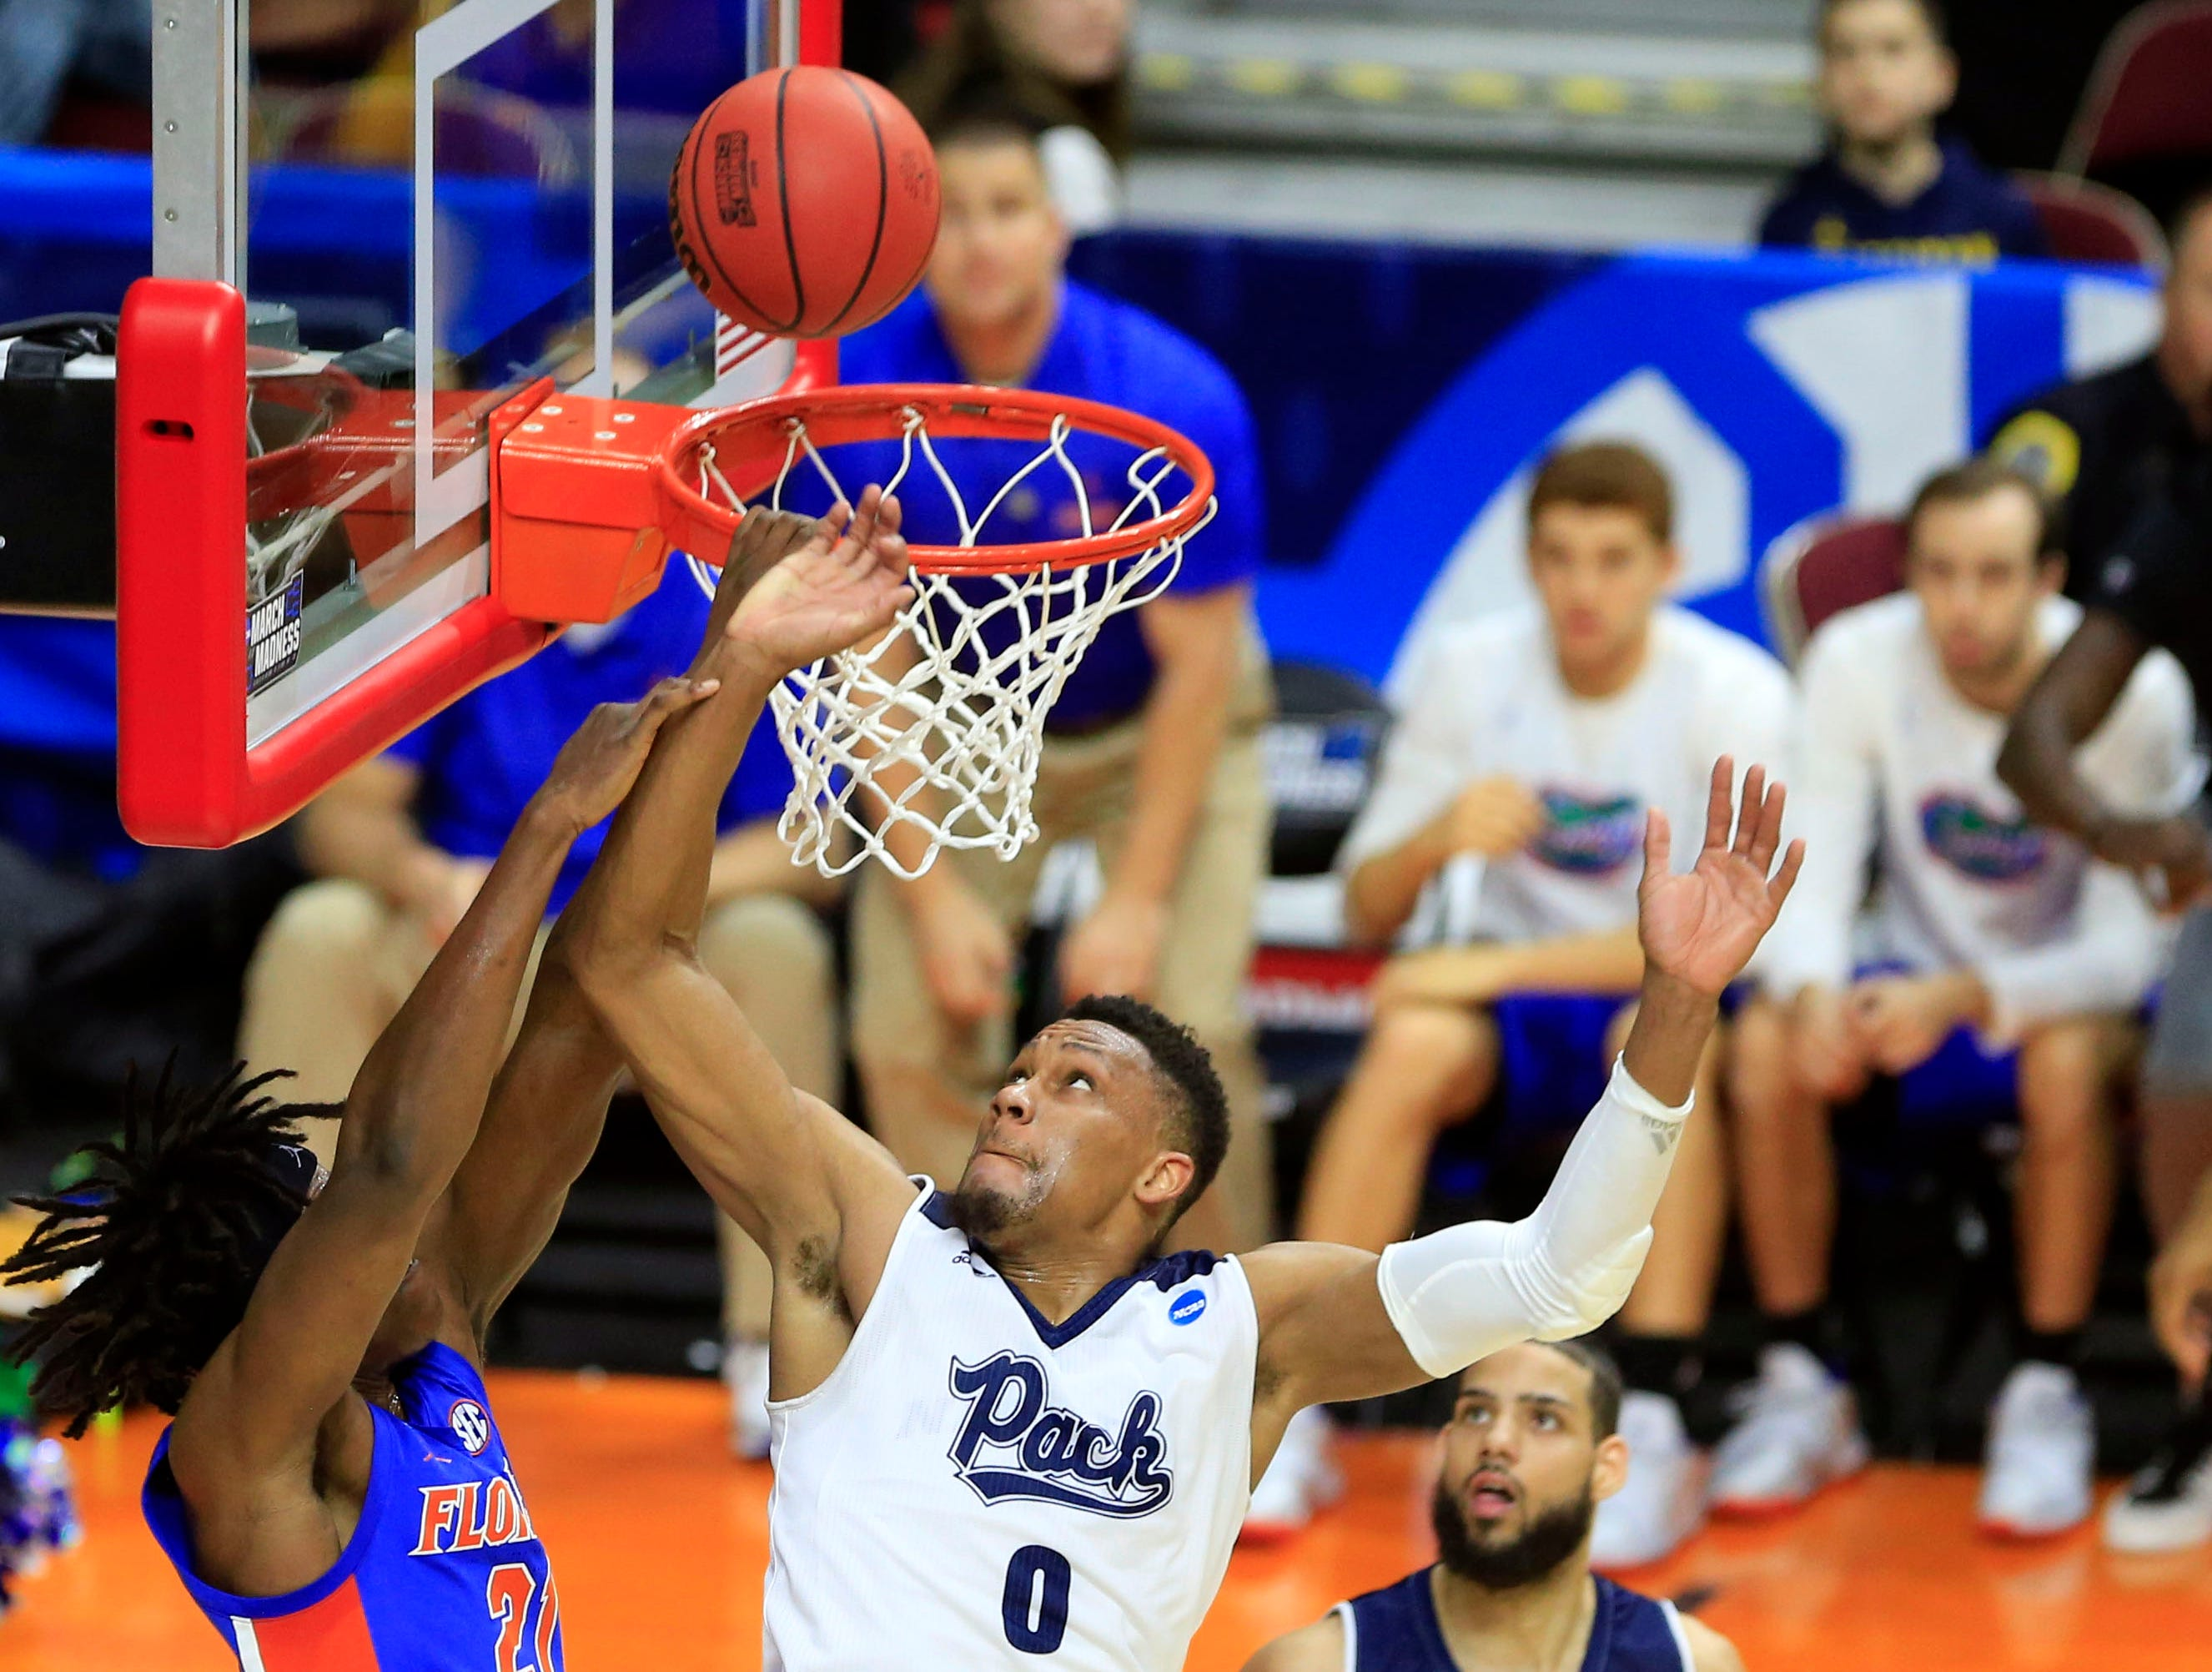 Nevada forward Tre'Shawn Thurman blocks a shot from Florida forward Dontay Bassett during their NCAA Division I Men's Basketball Championship First Round game on Thursday, March 21, 2019 in Des Moines.